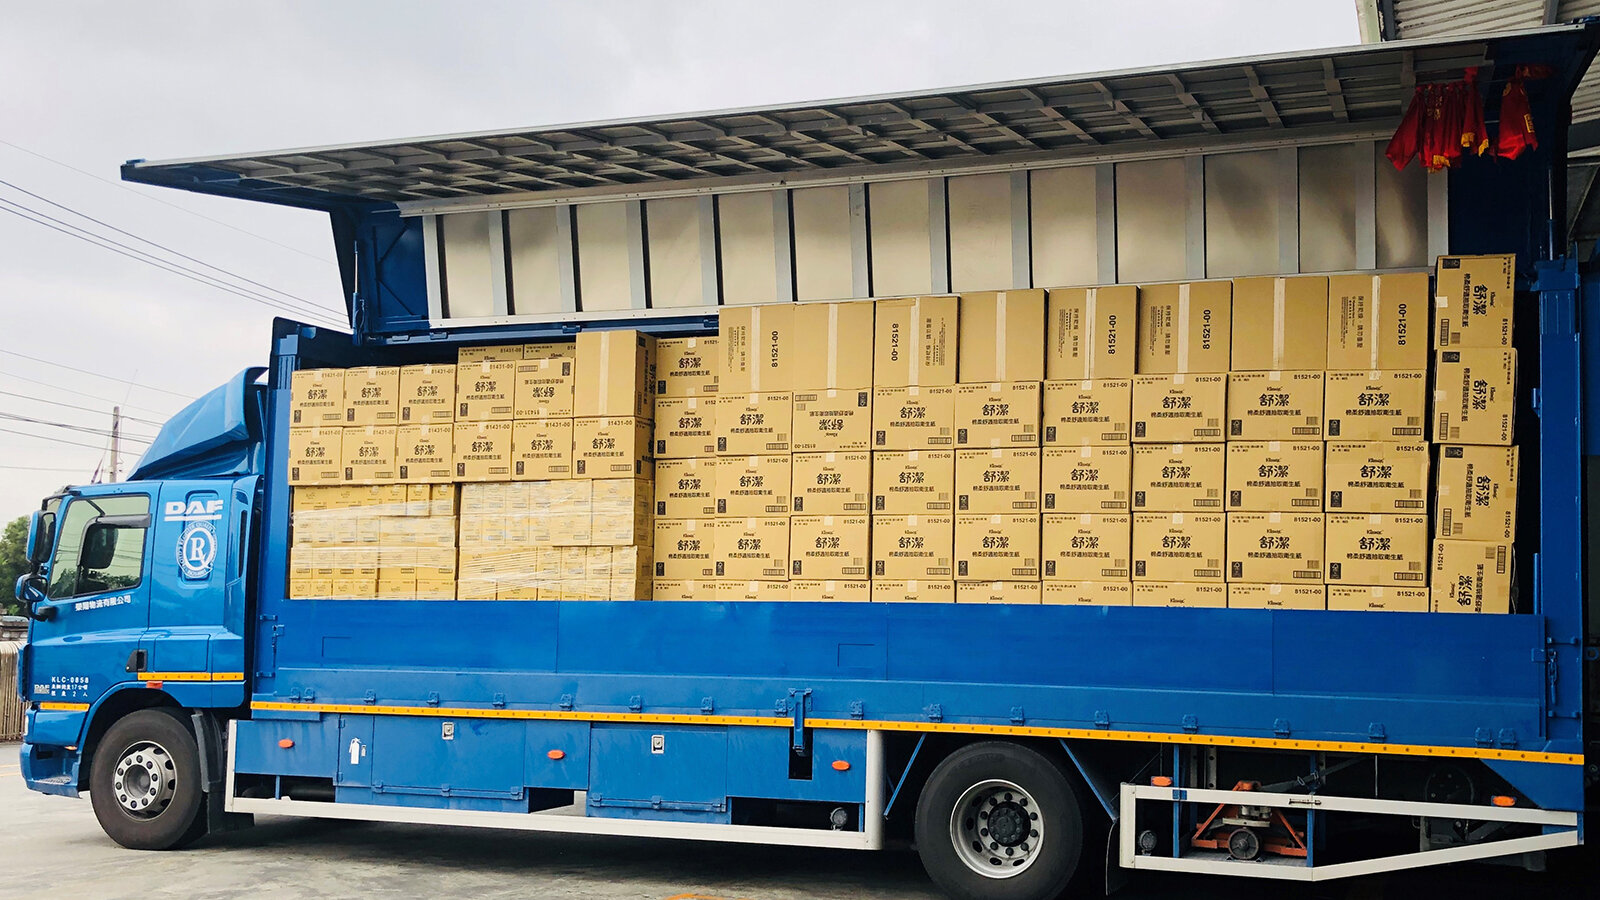 Delivery truck loaded with boxes of rolled paper towels